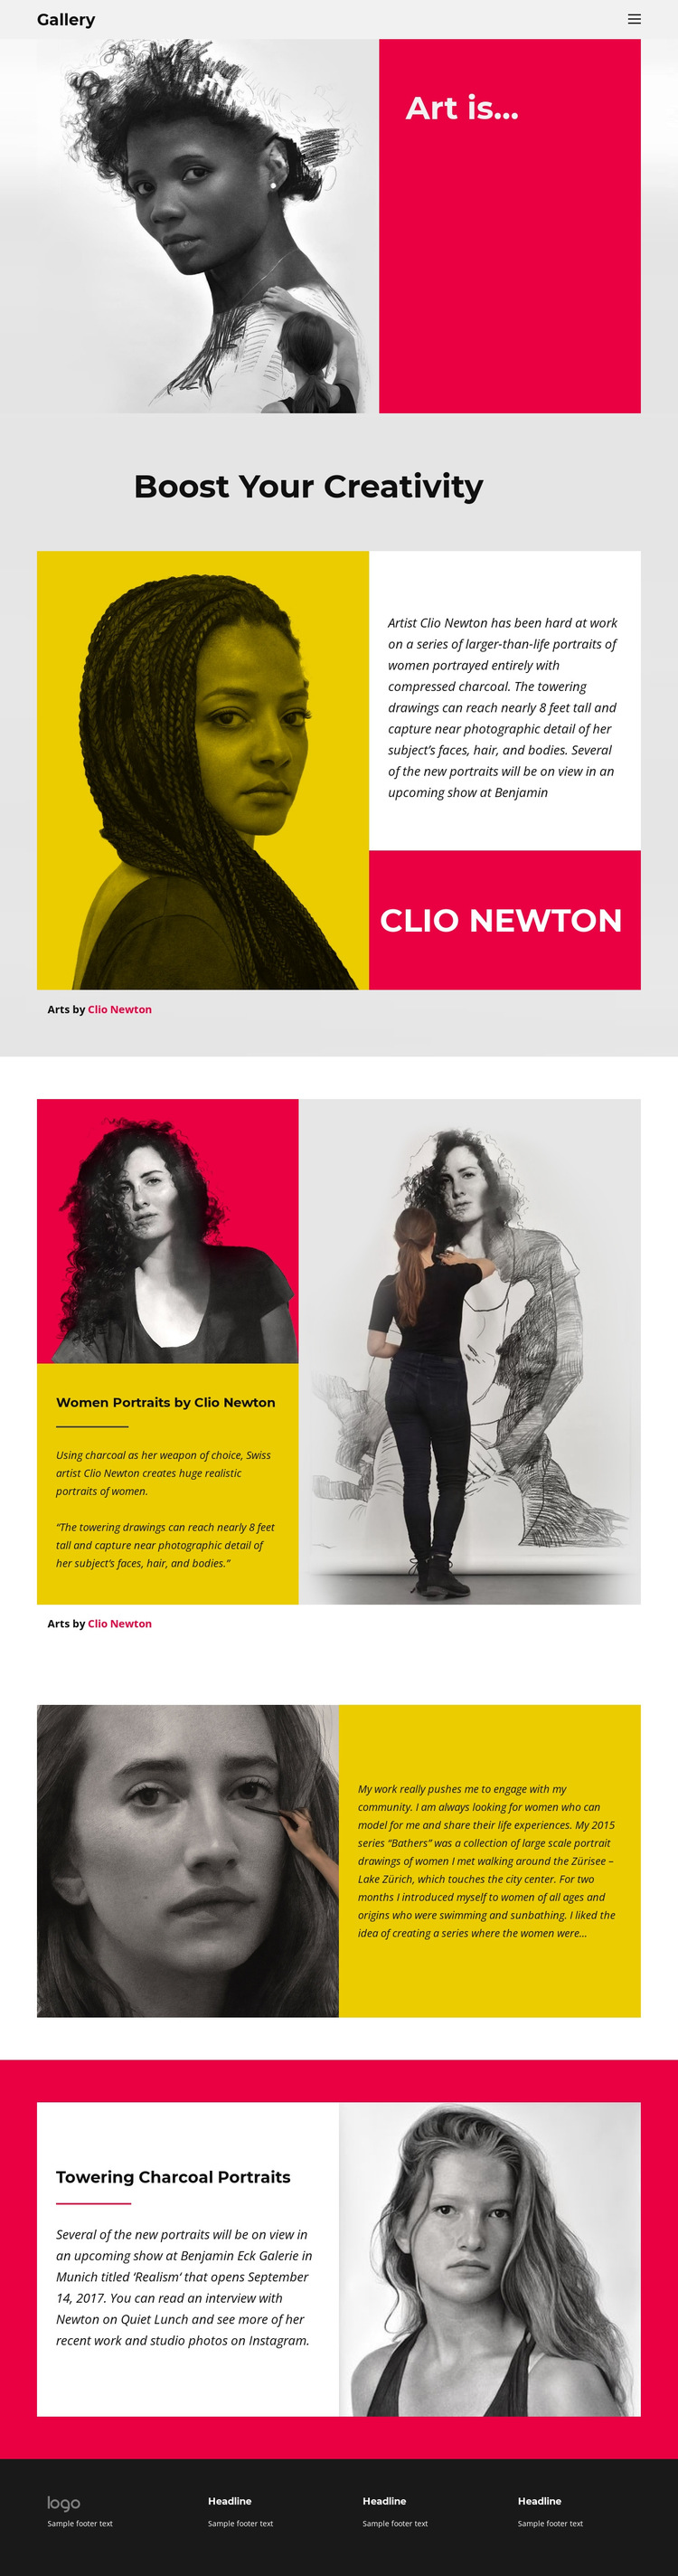 Drawing charcoal portraits HTML5 Template